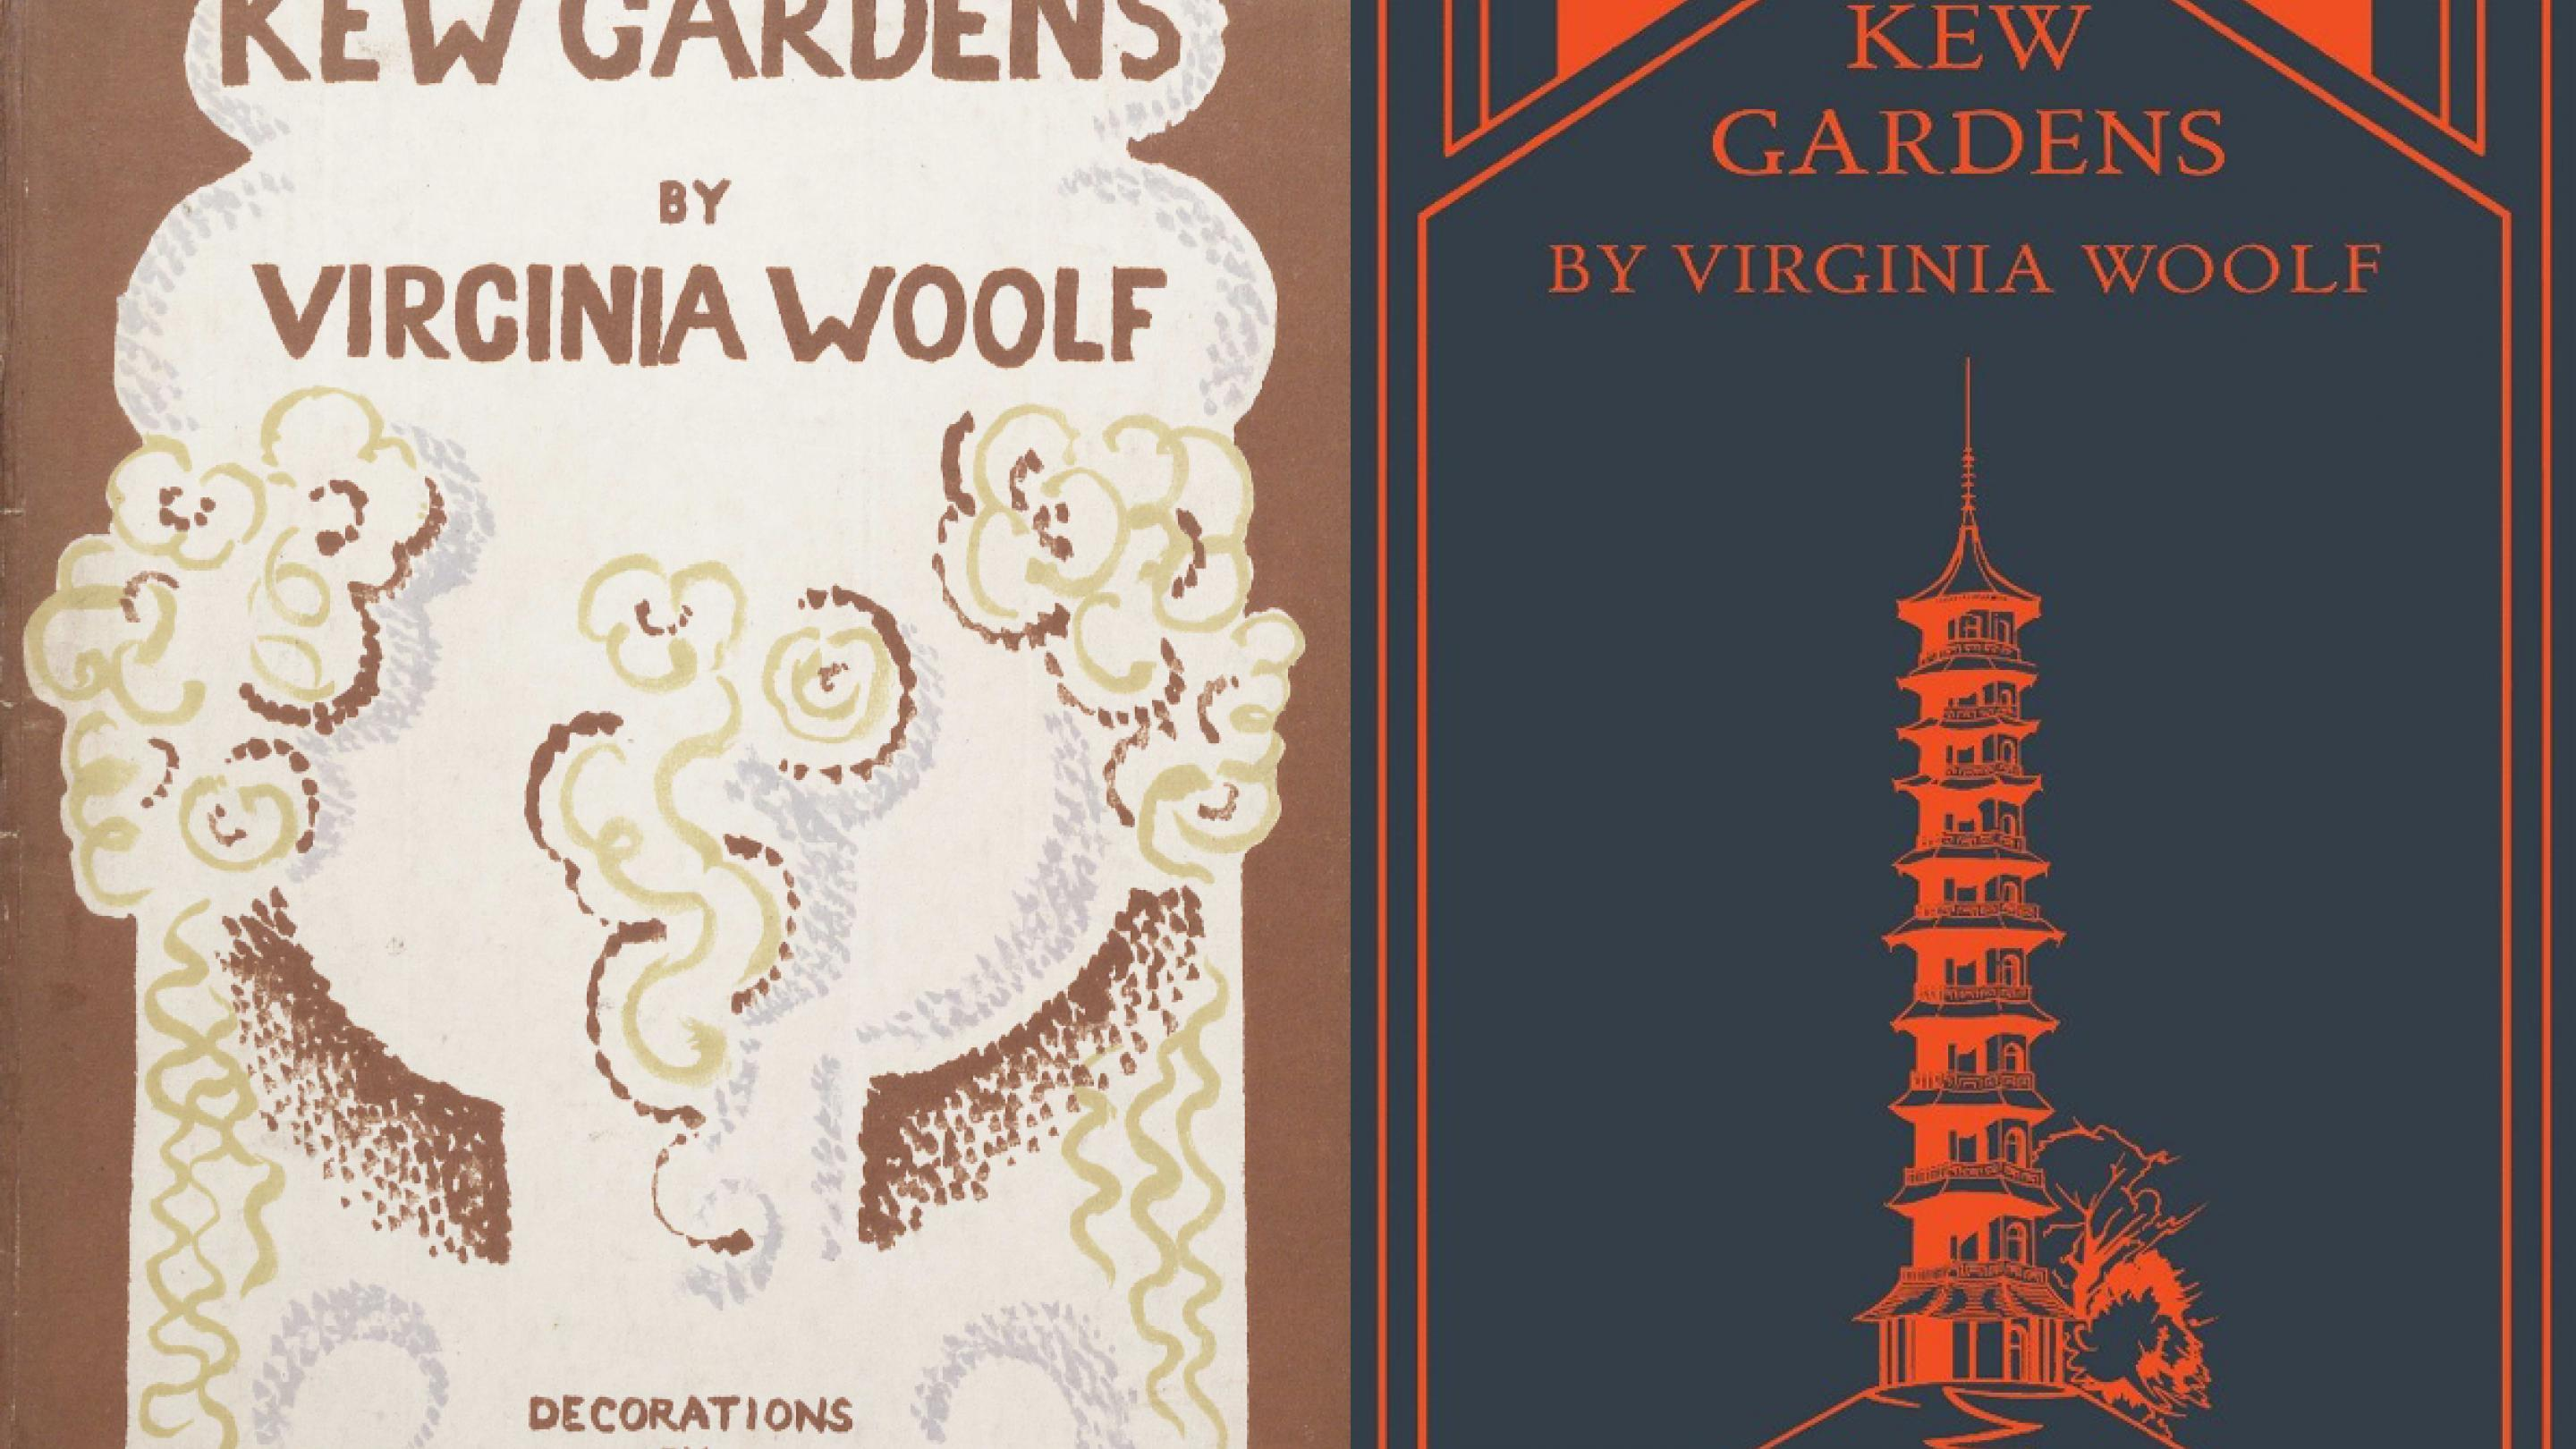 Photo of book covers for Virginia Woolf's Kew Gardens